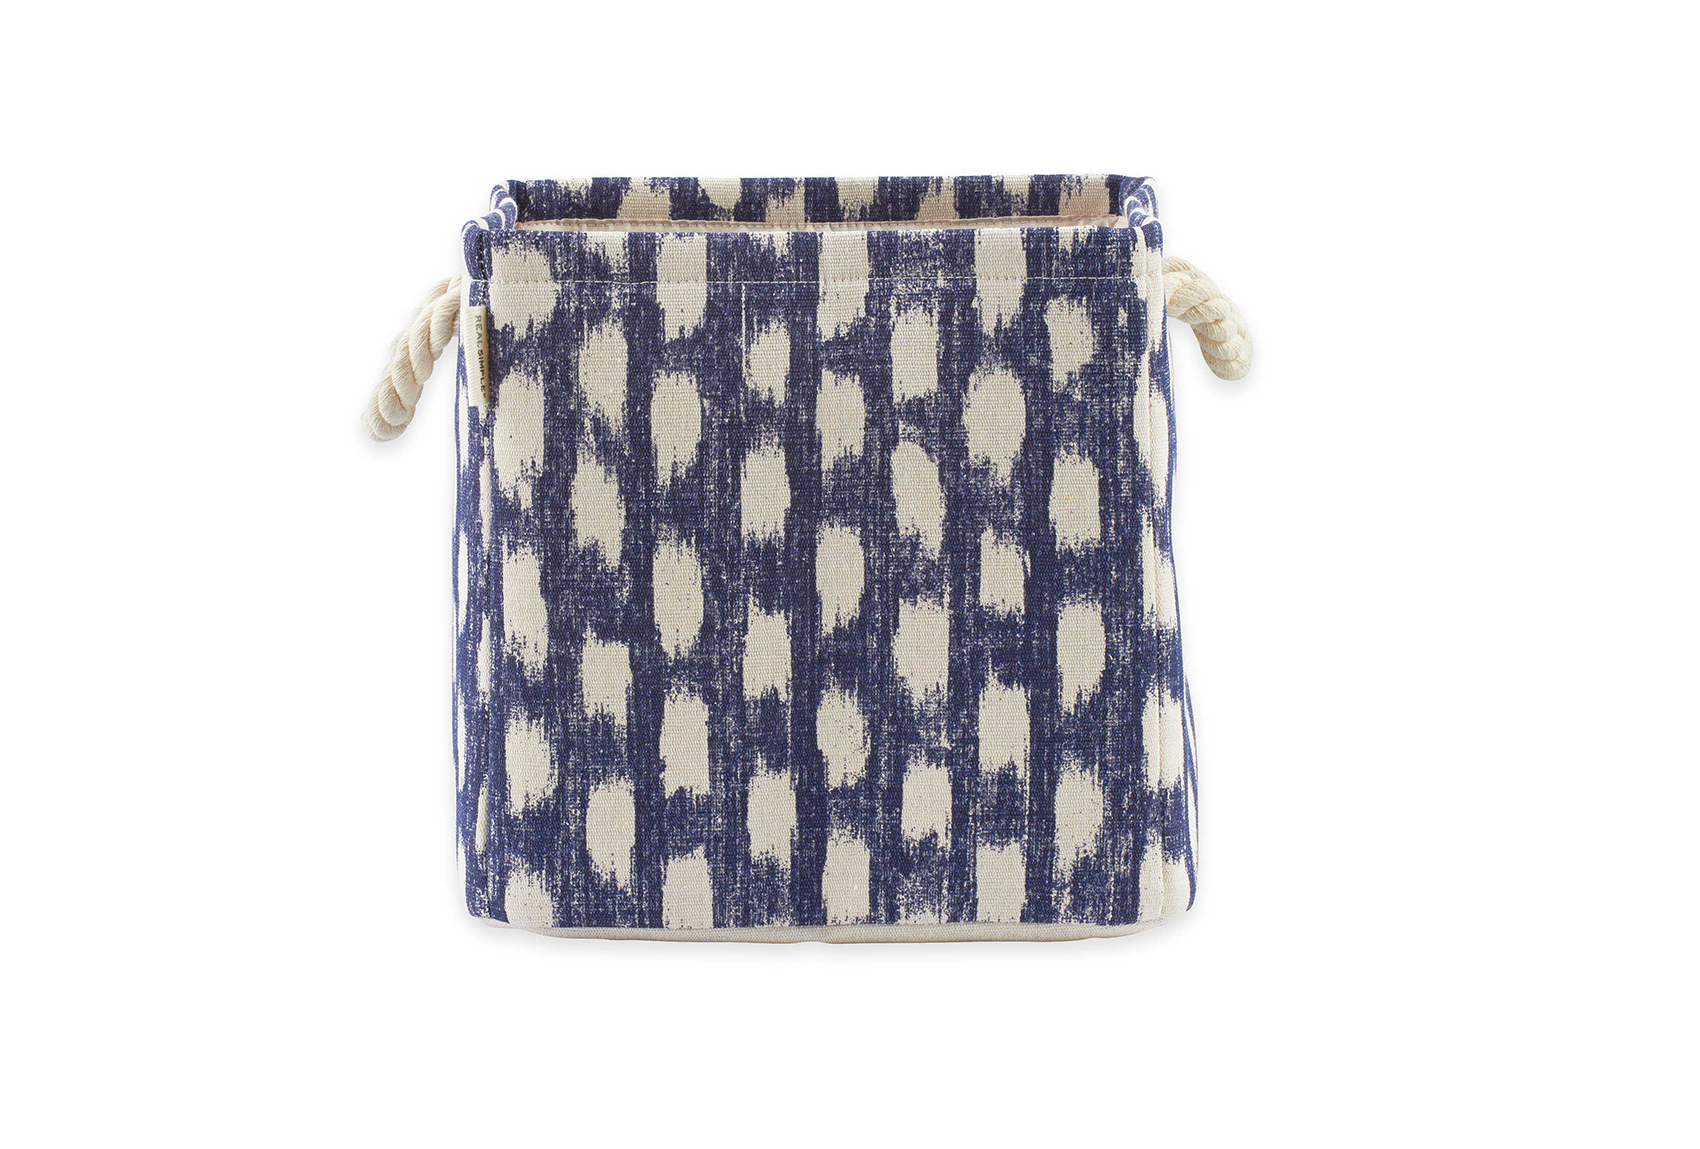 Bed Bath & Beyond Real Simple Knock Down Storage Tote with Rope Handles in Blue